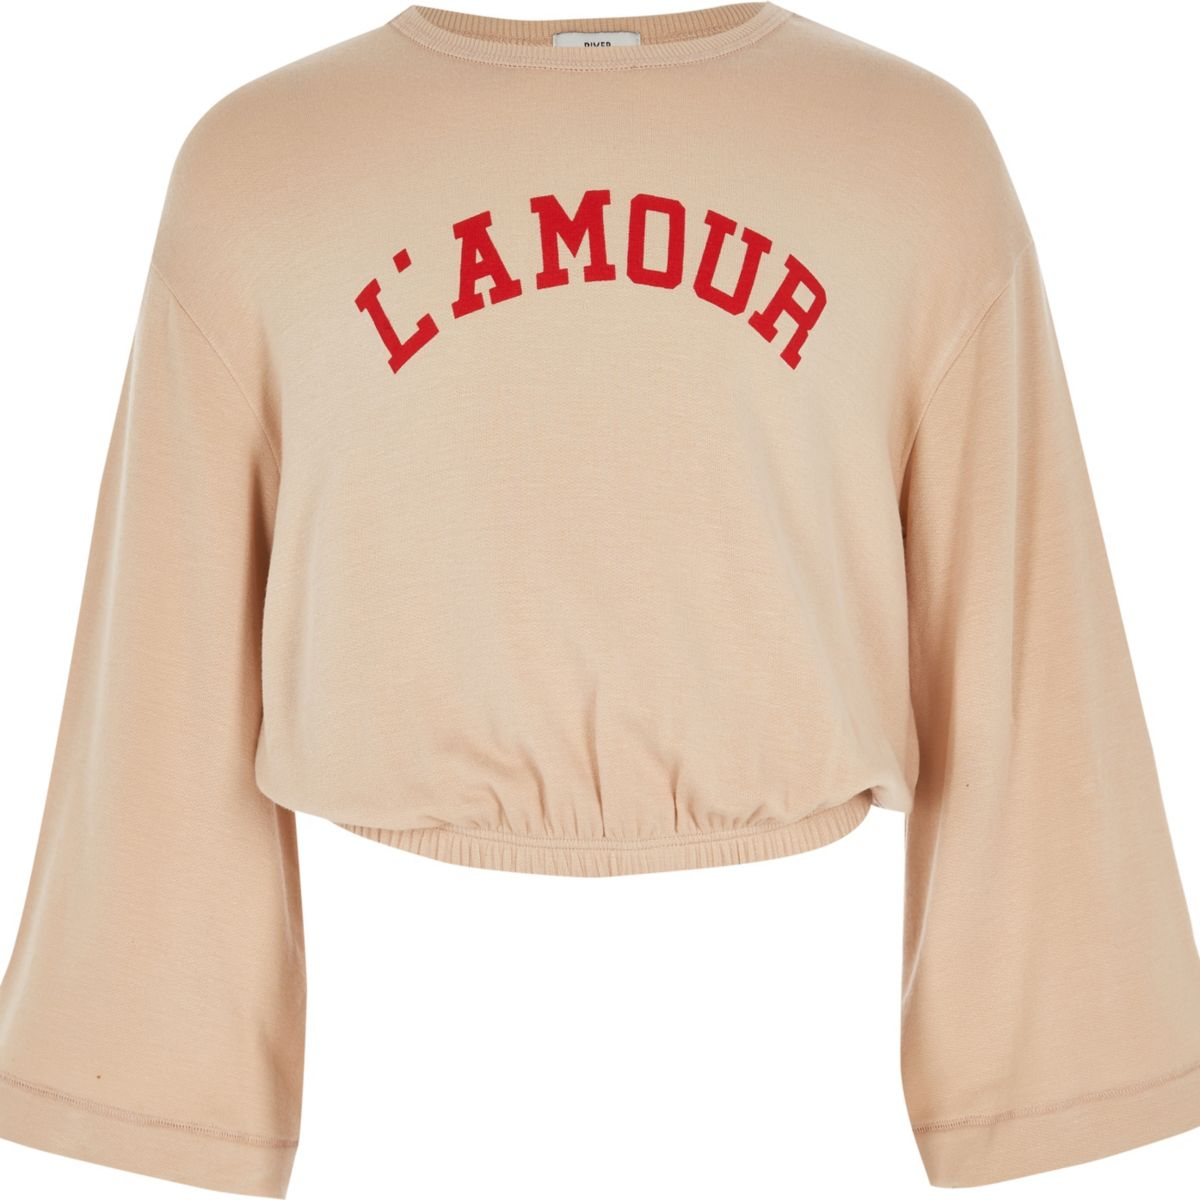 Girls cream 'l'amour' long sleeve top